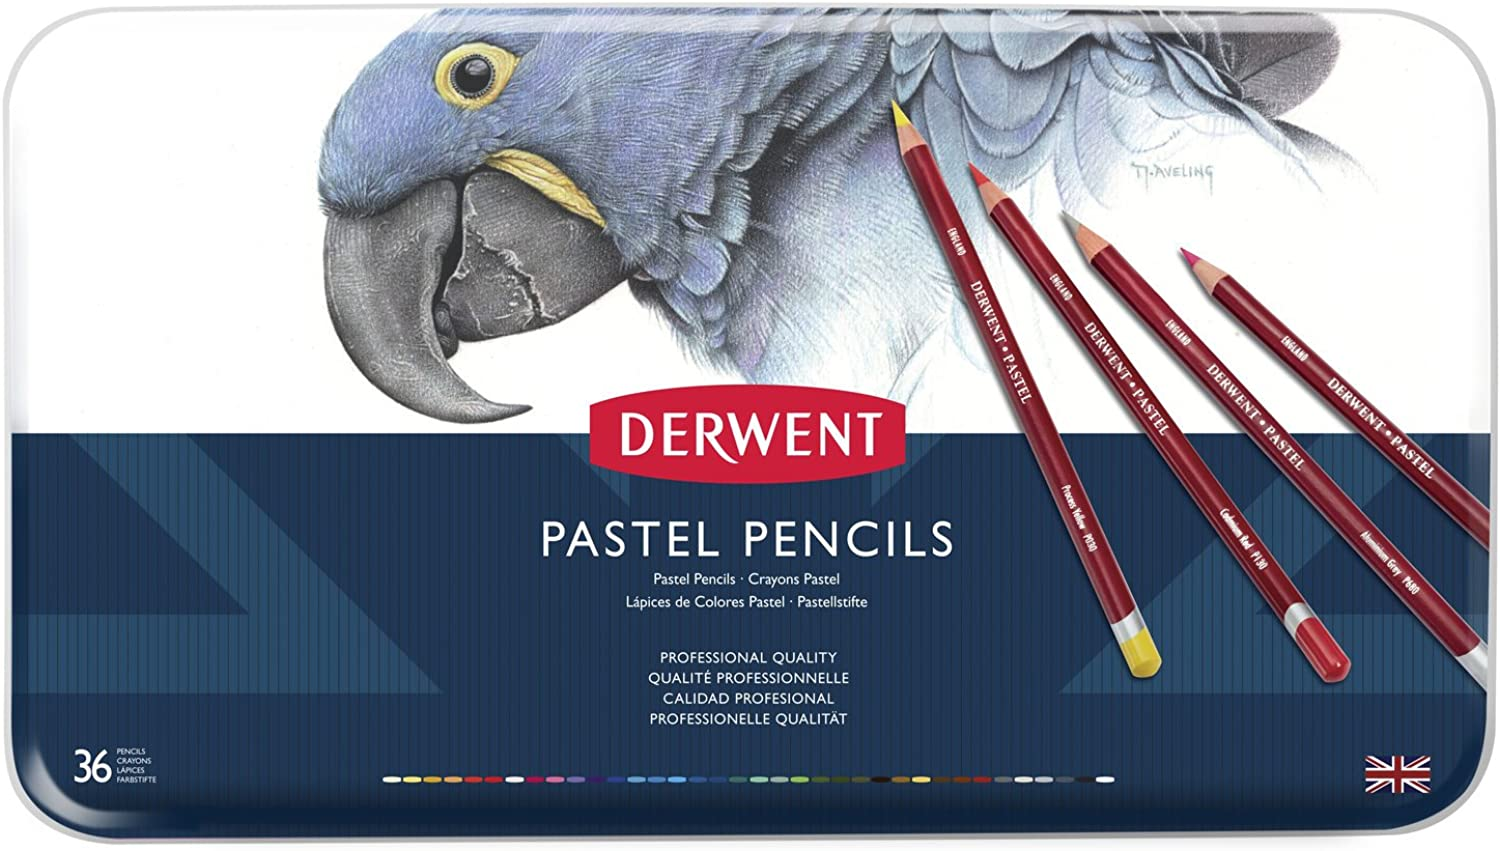 Derwent Pastellstifte in Metallbox, 36 Stifte